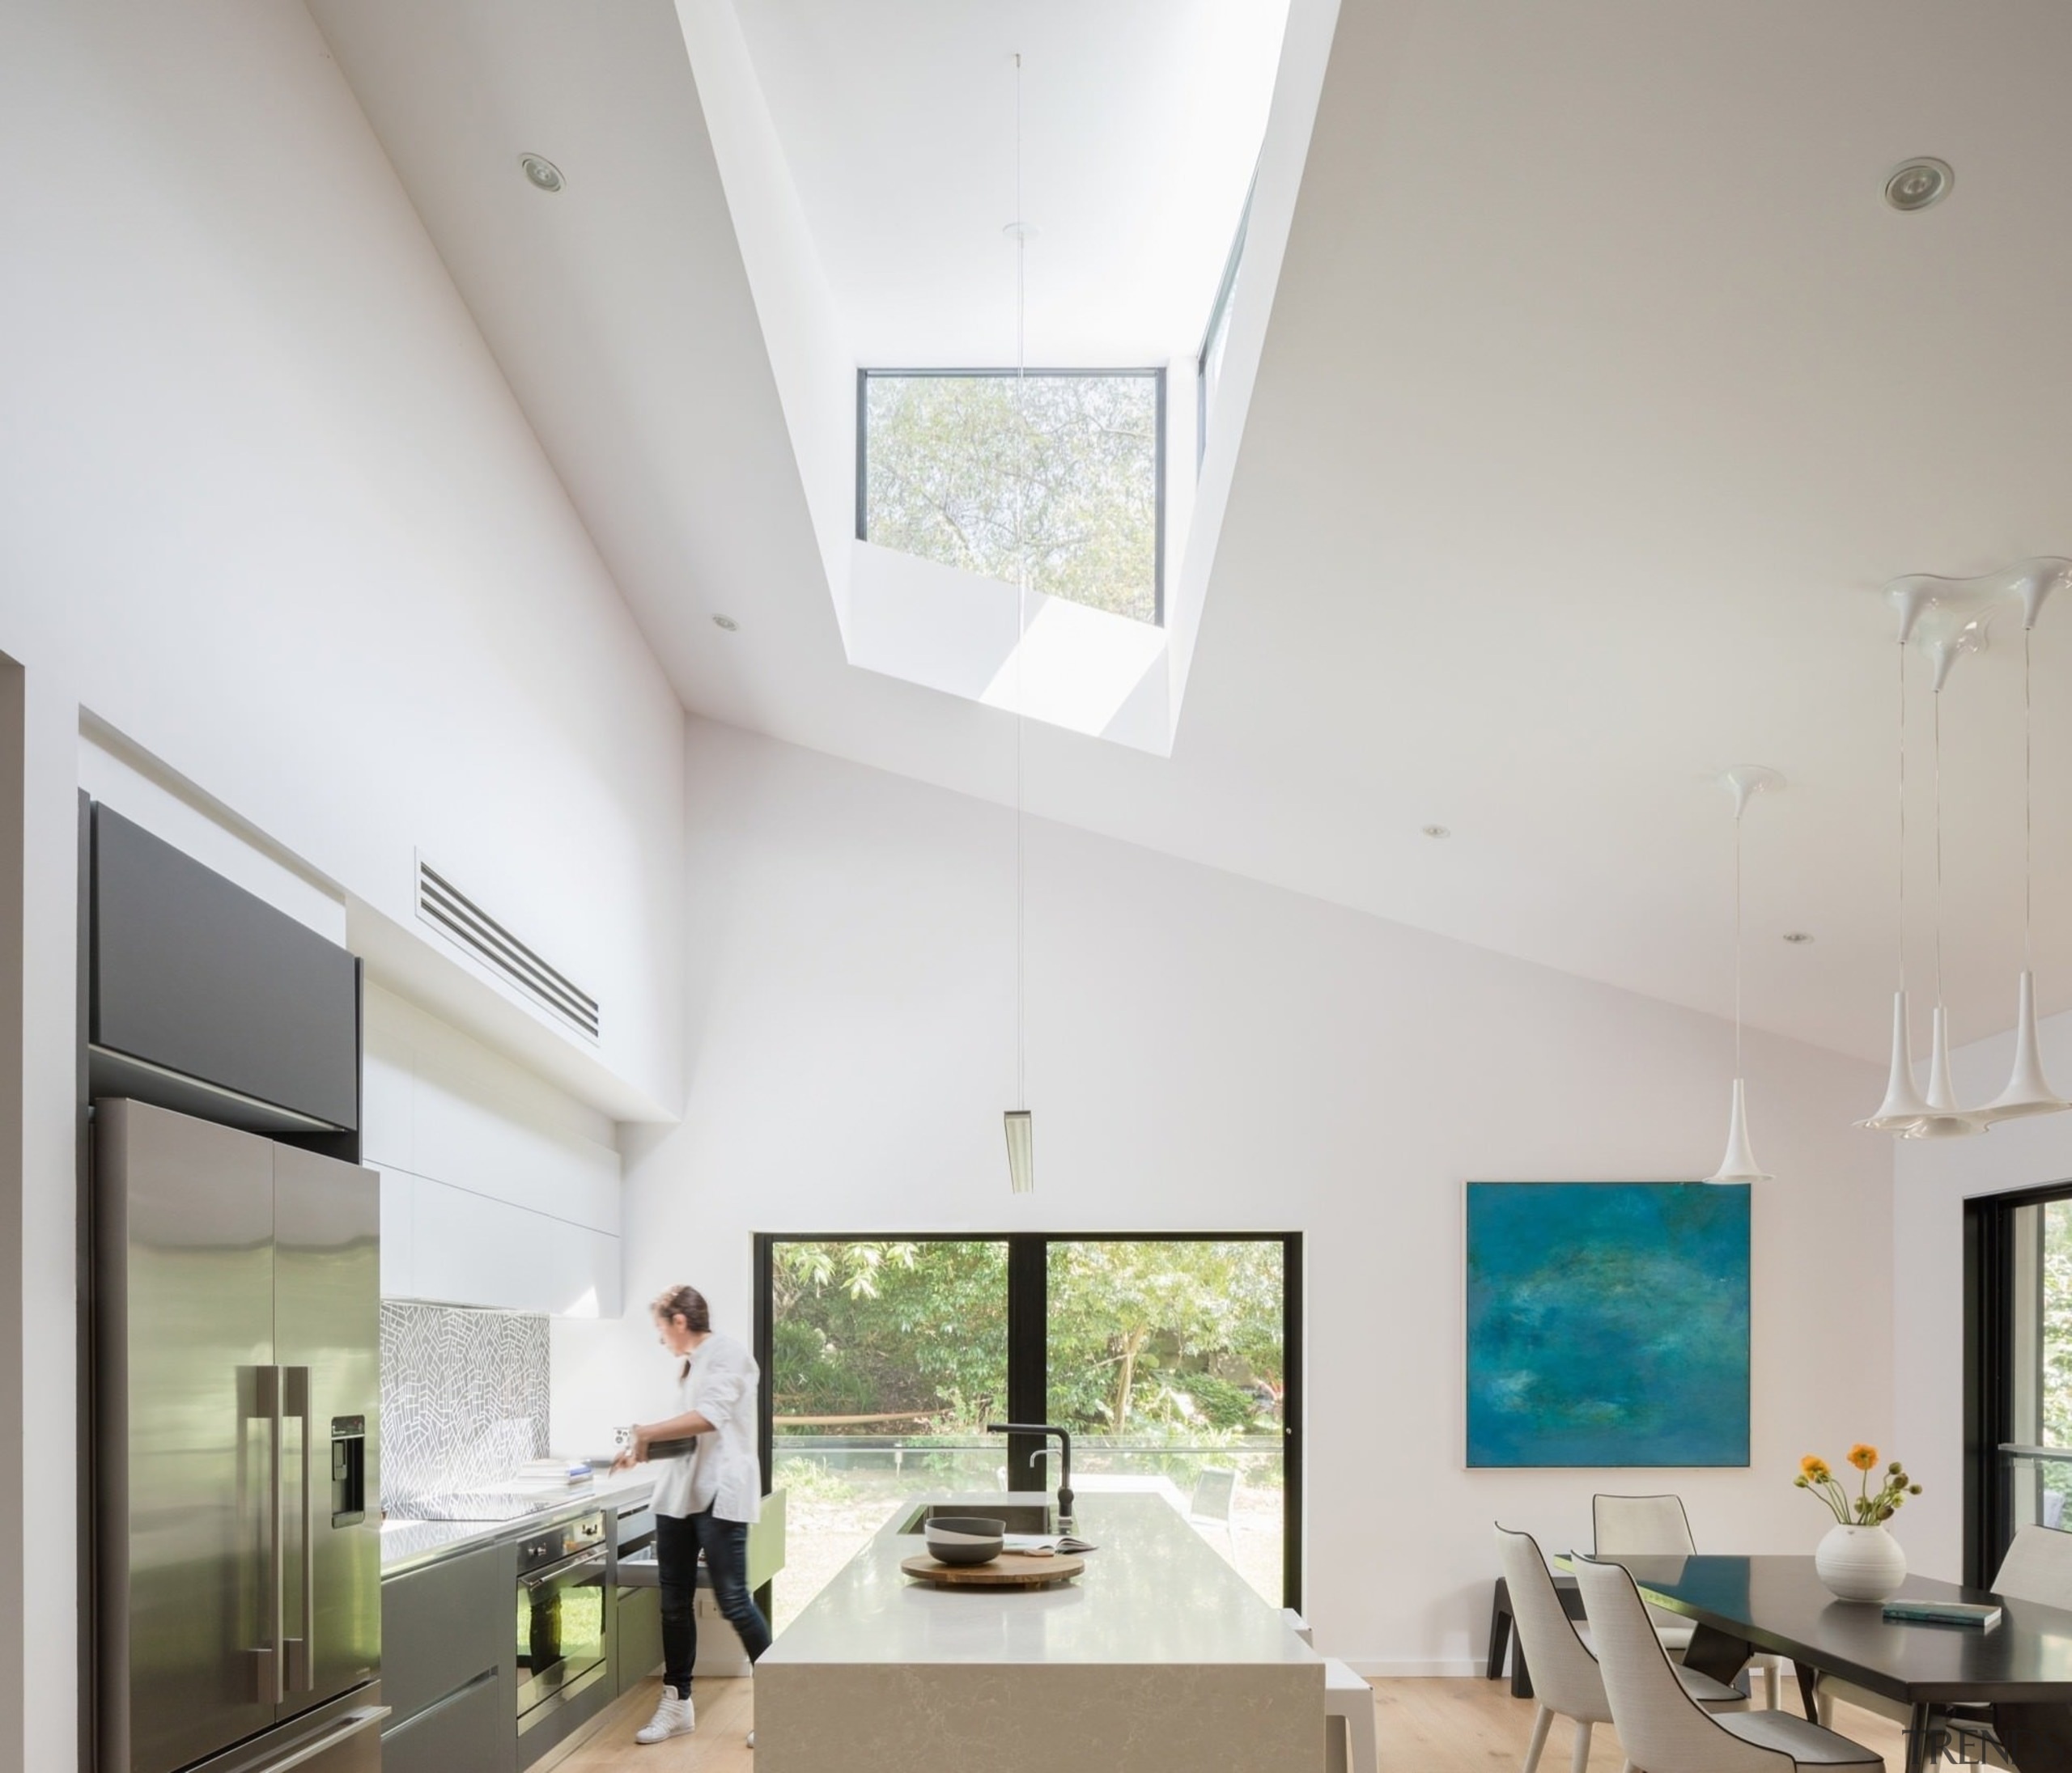 Architect: Bijl ArchitecturePhotography by Katherine Lu architecture, ceiling, daylighting, house, interior design, living room, real estate, window, gray, white